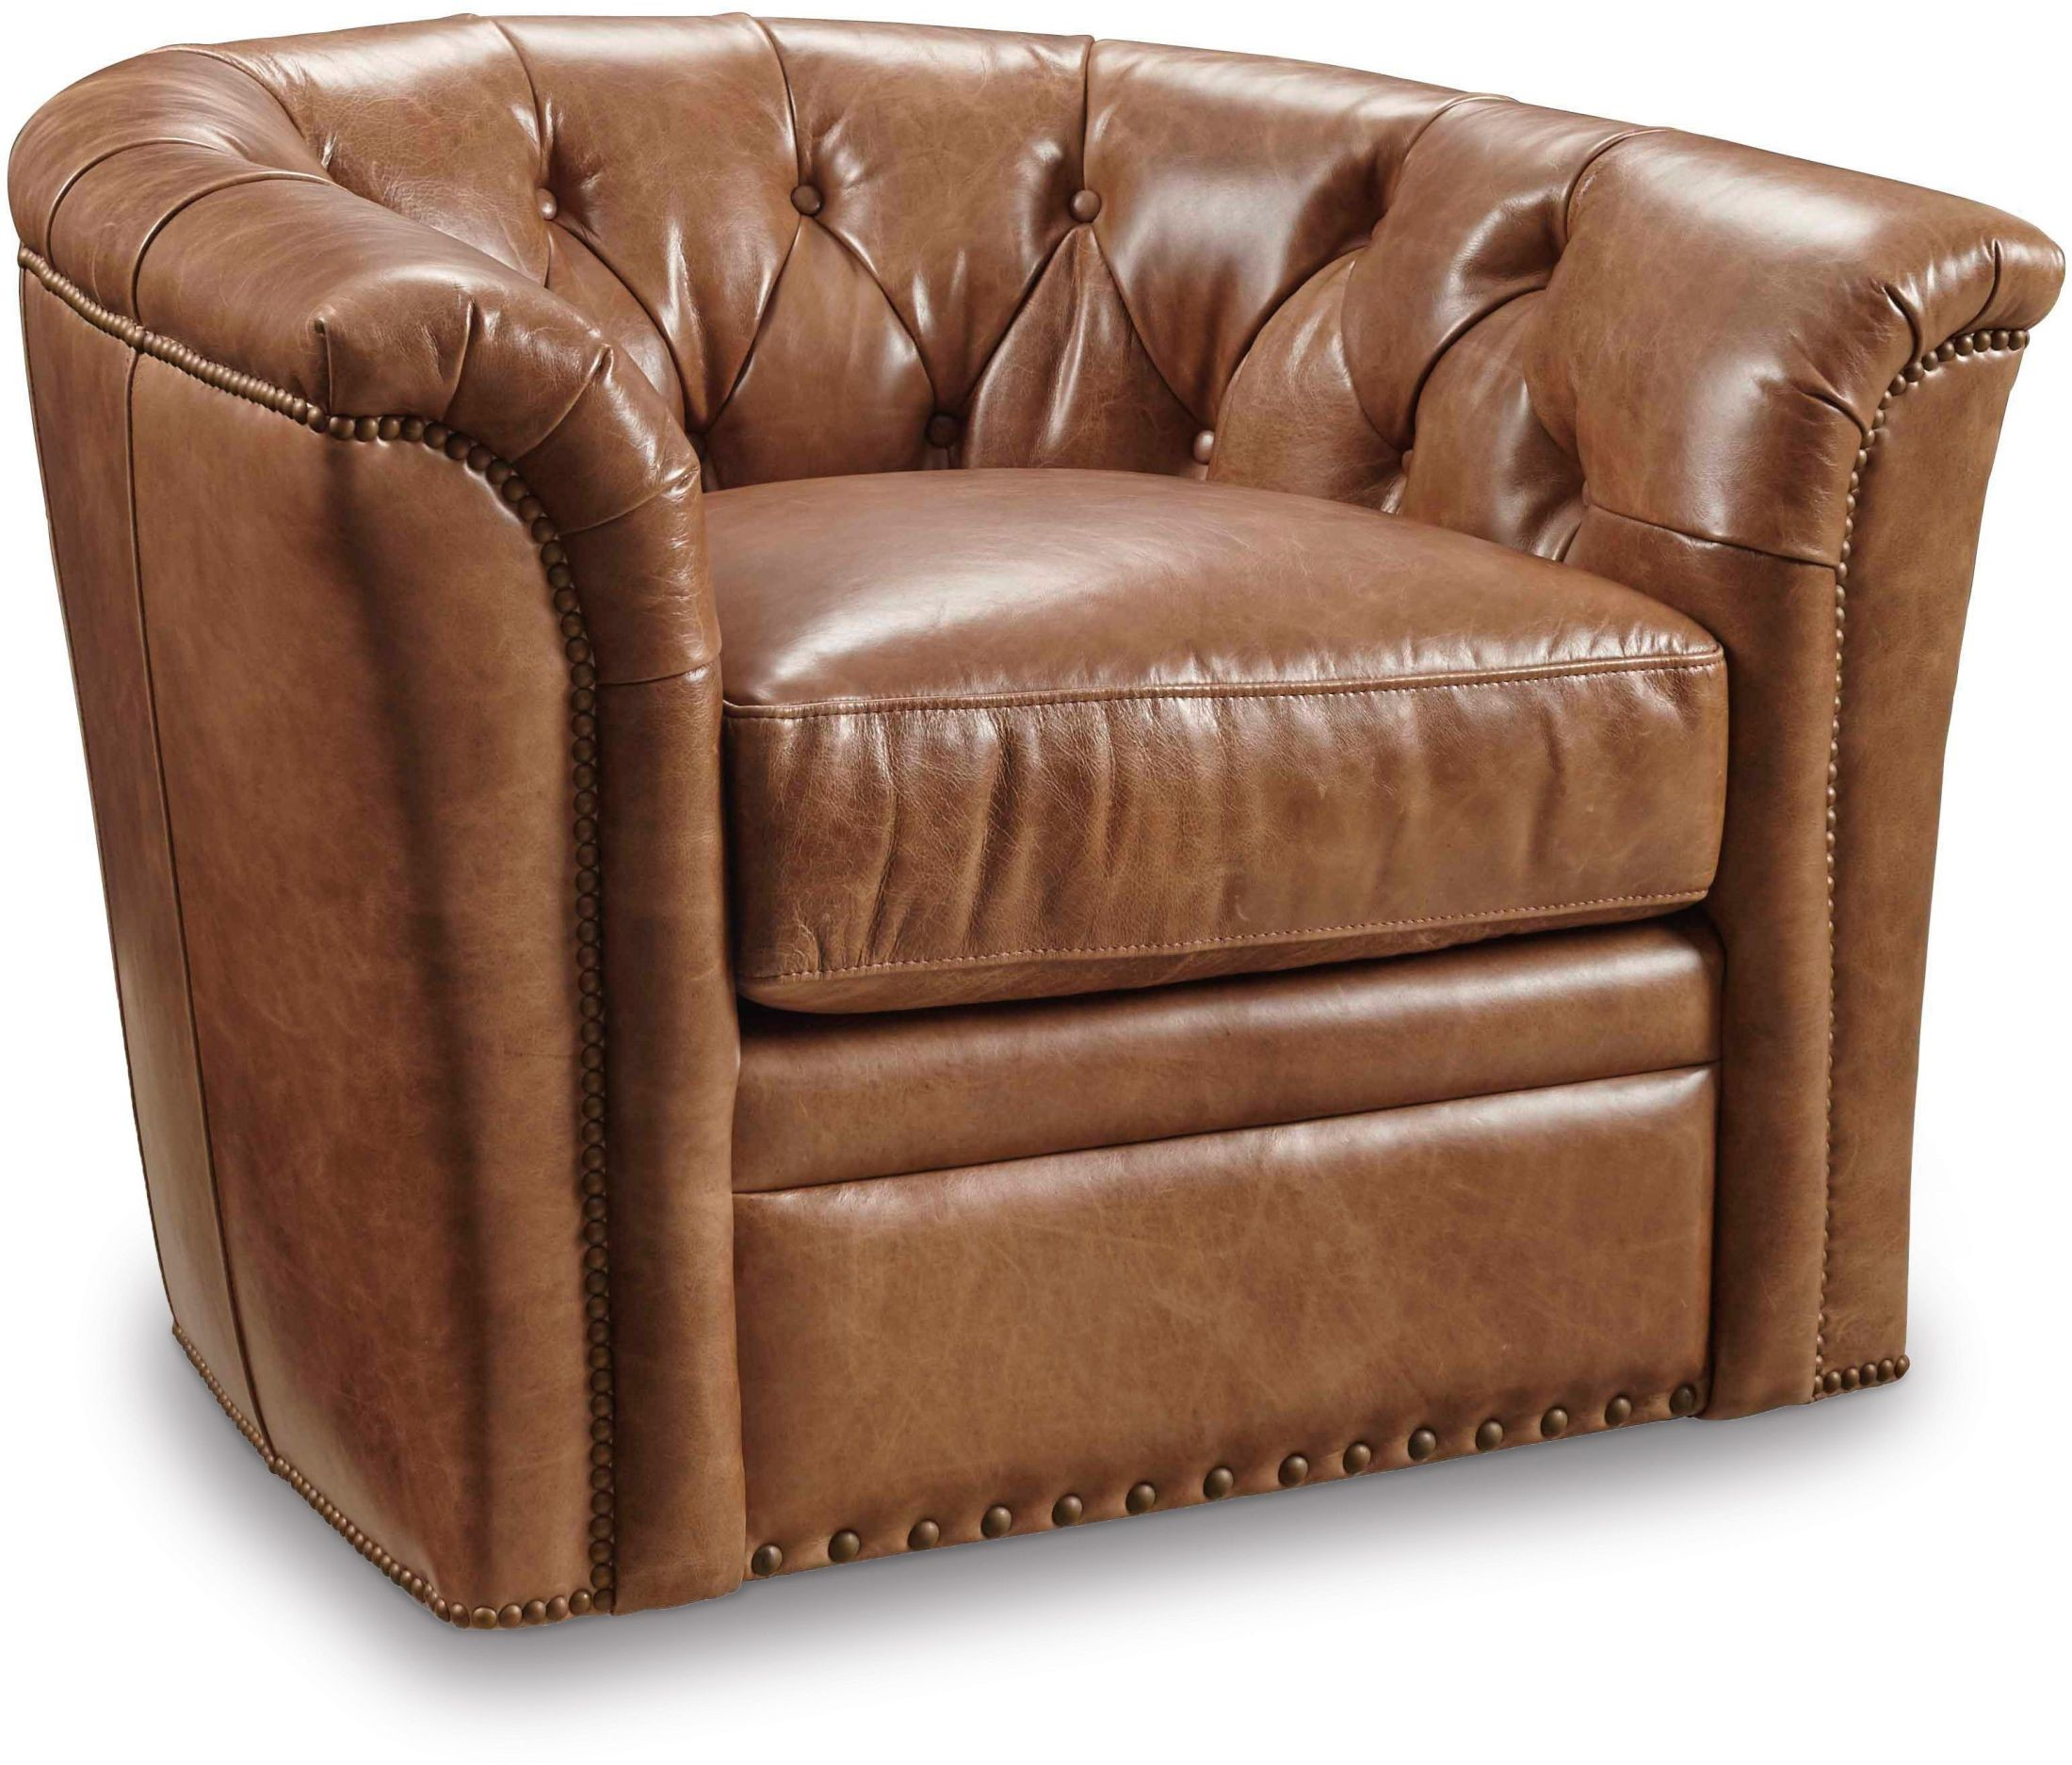 Ripley Brown Swivel Leather Club Chair